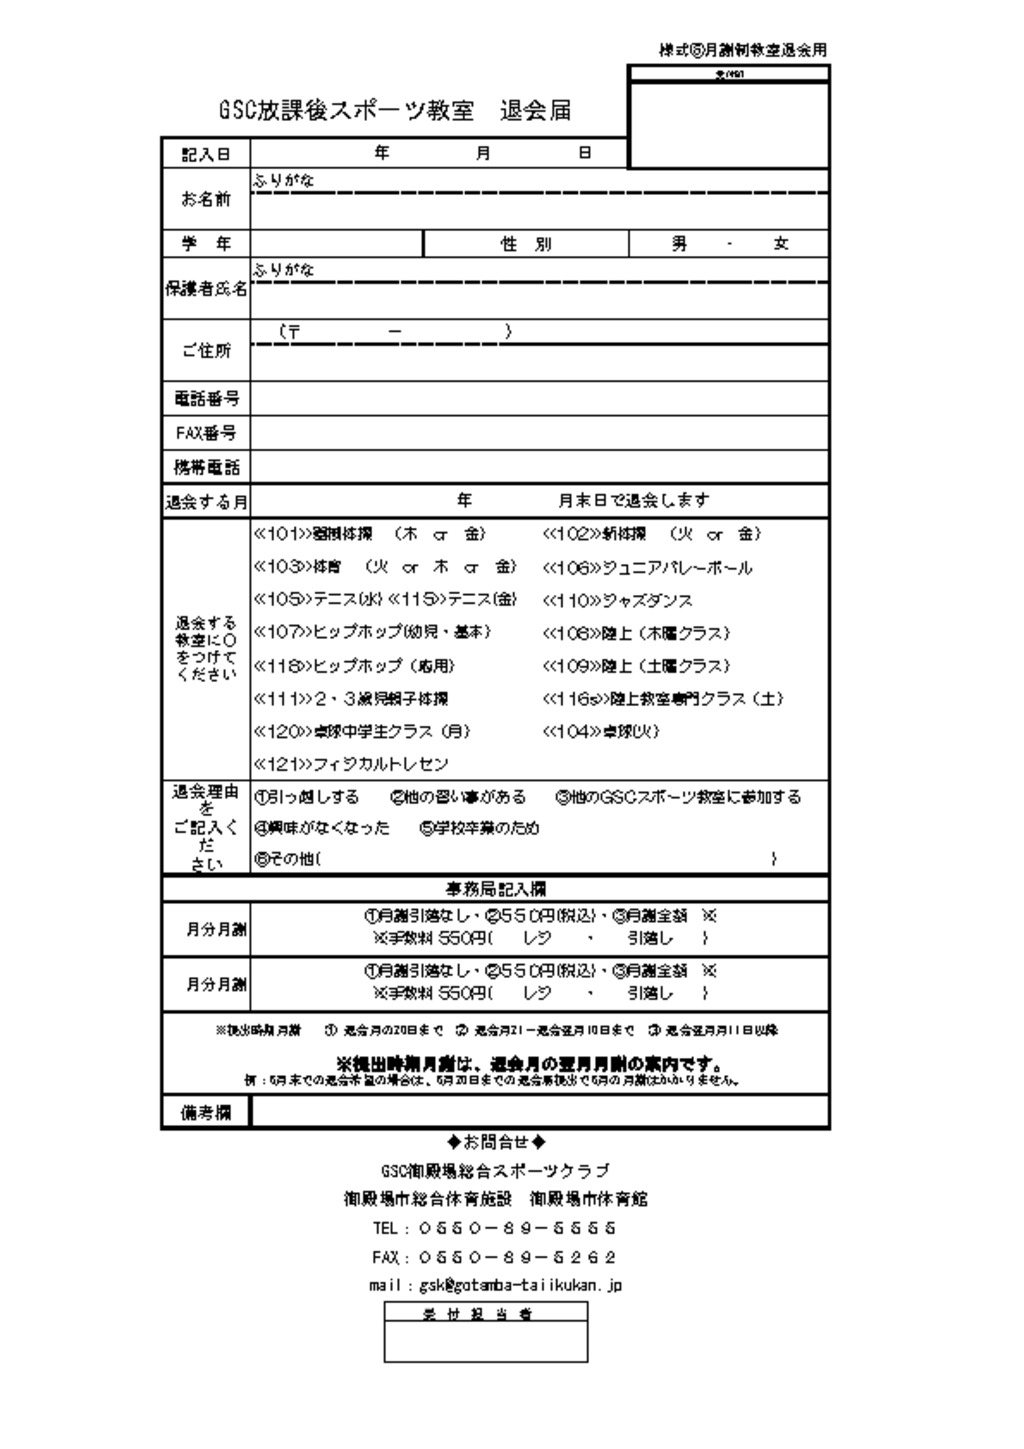 GSC放課後スポーツ教室 退会届